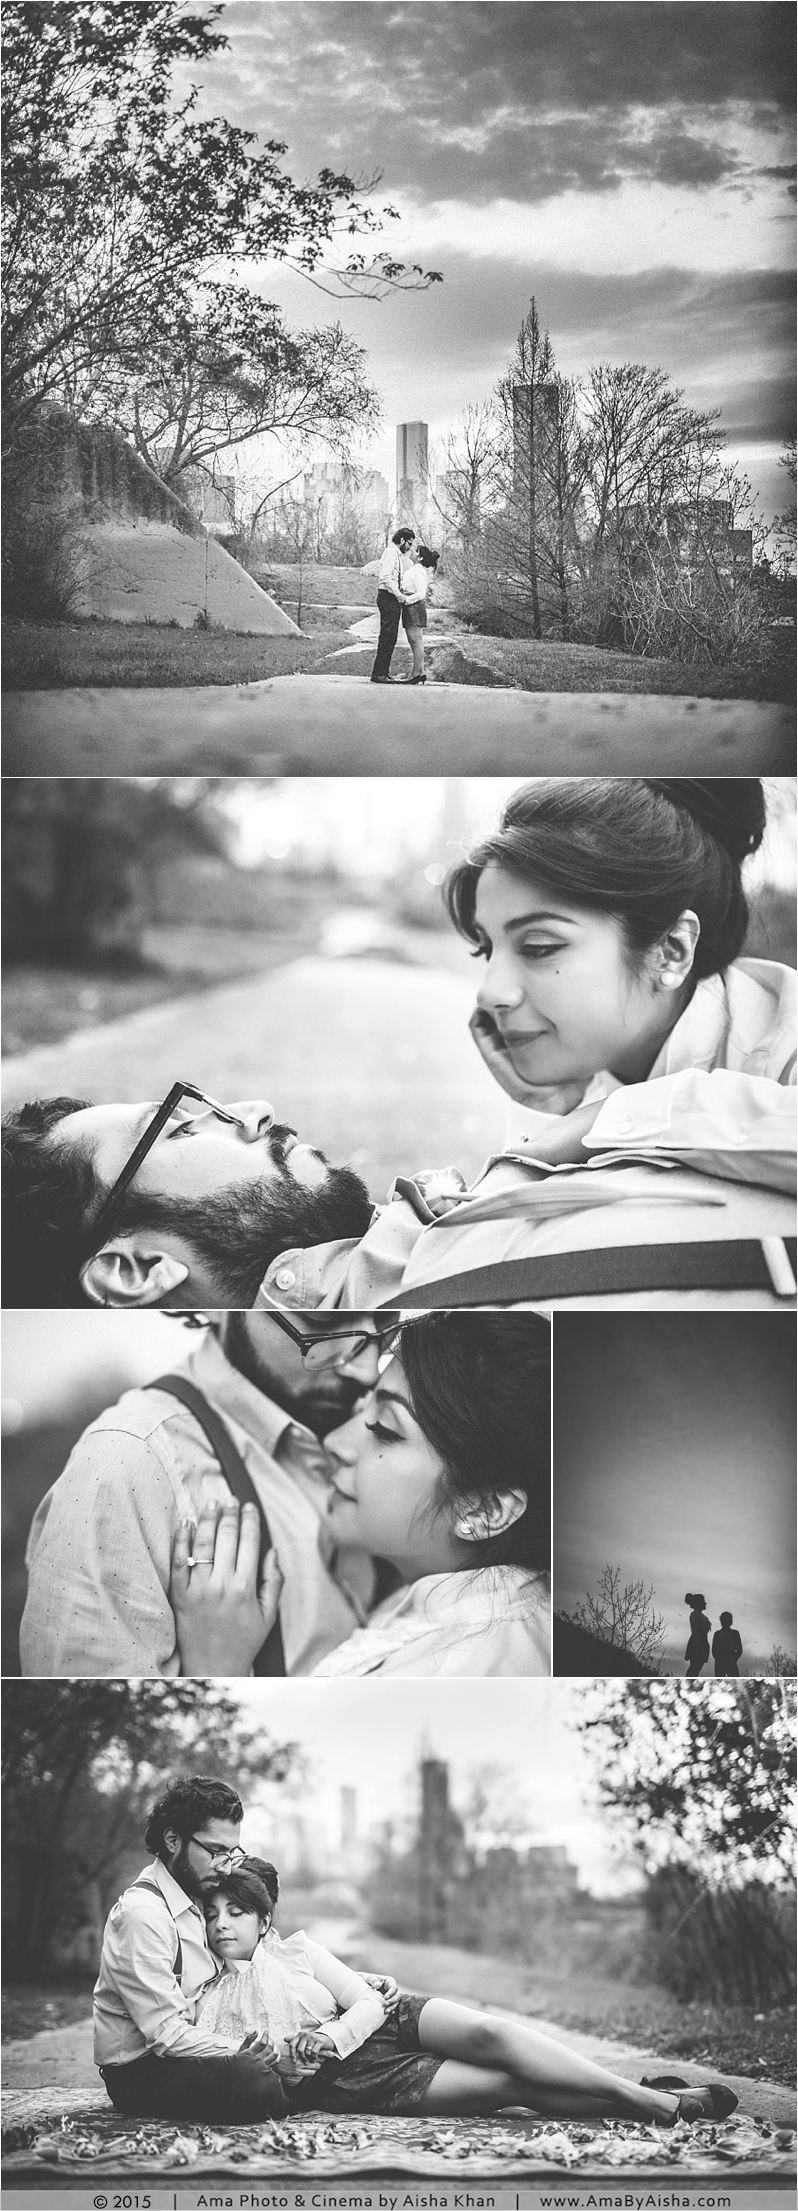 Timeless black and white engagement session from www.AmaByAisha.com